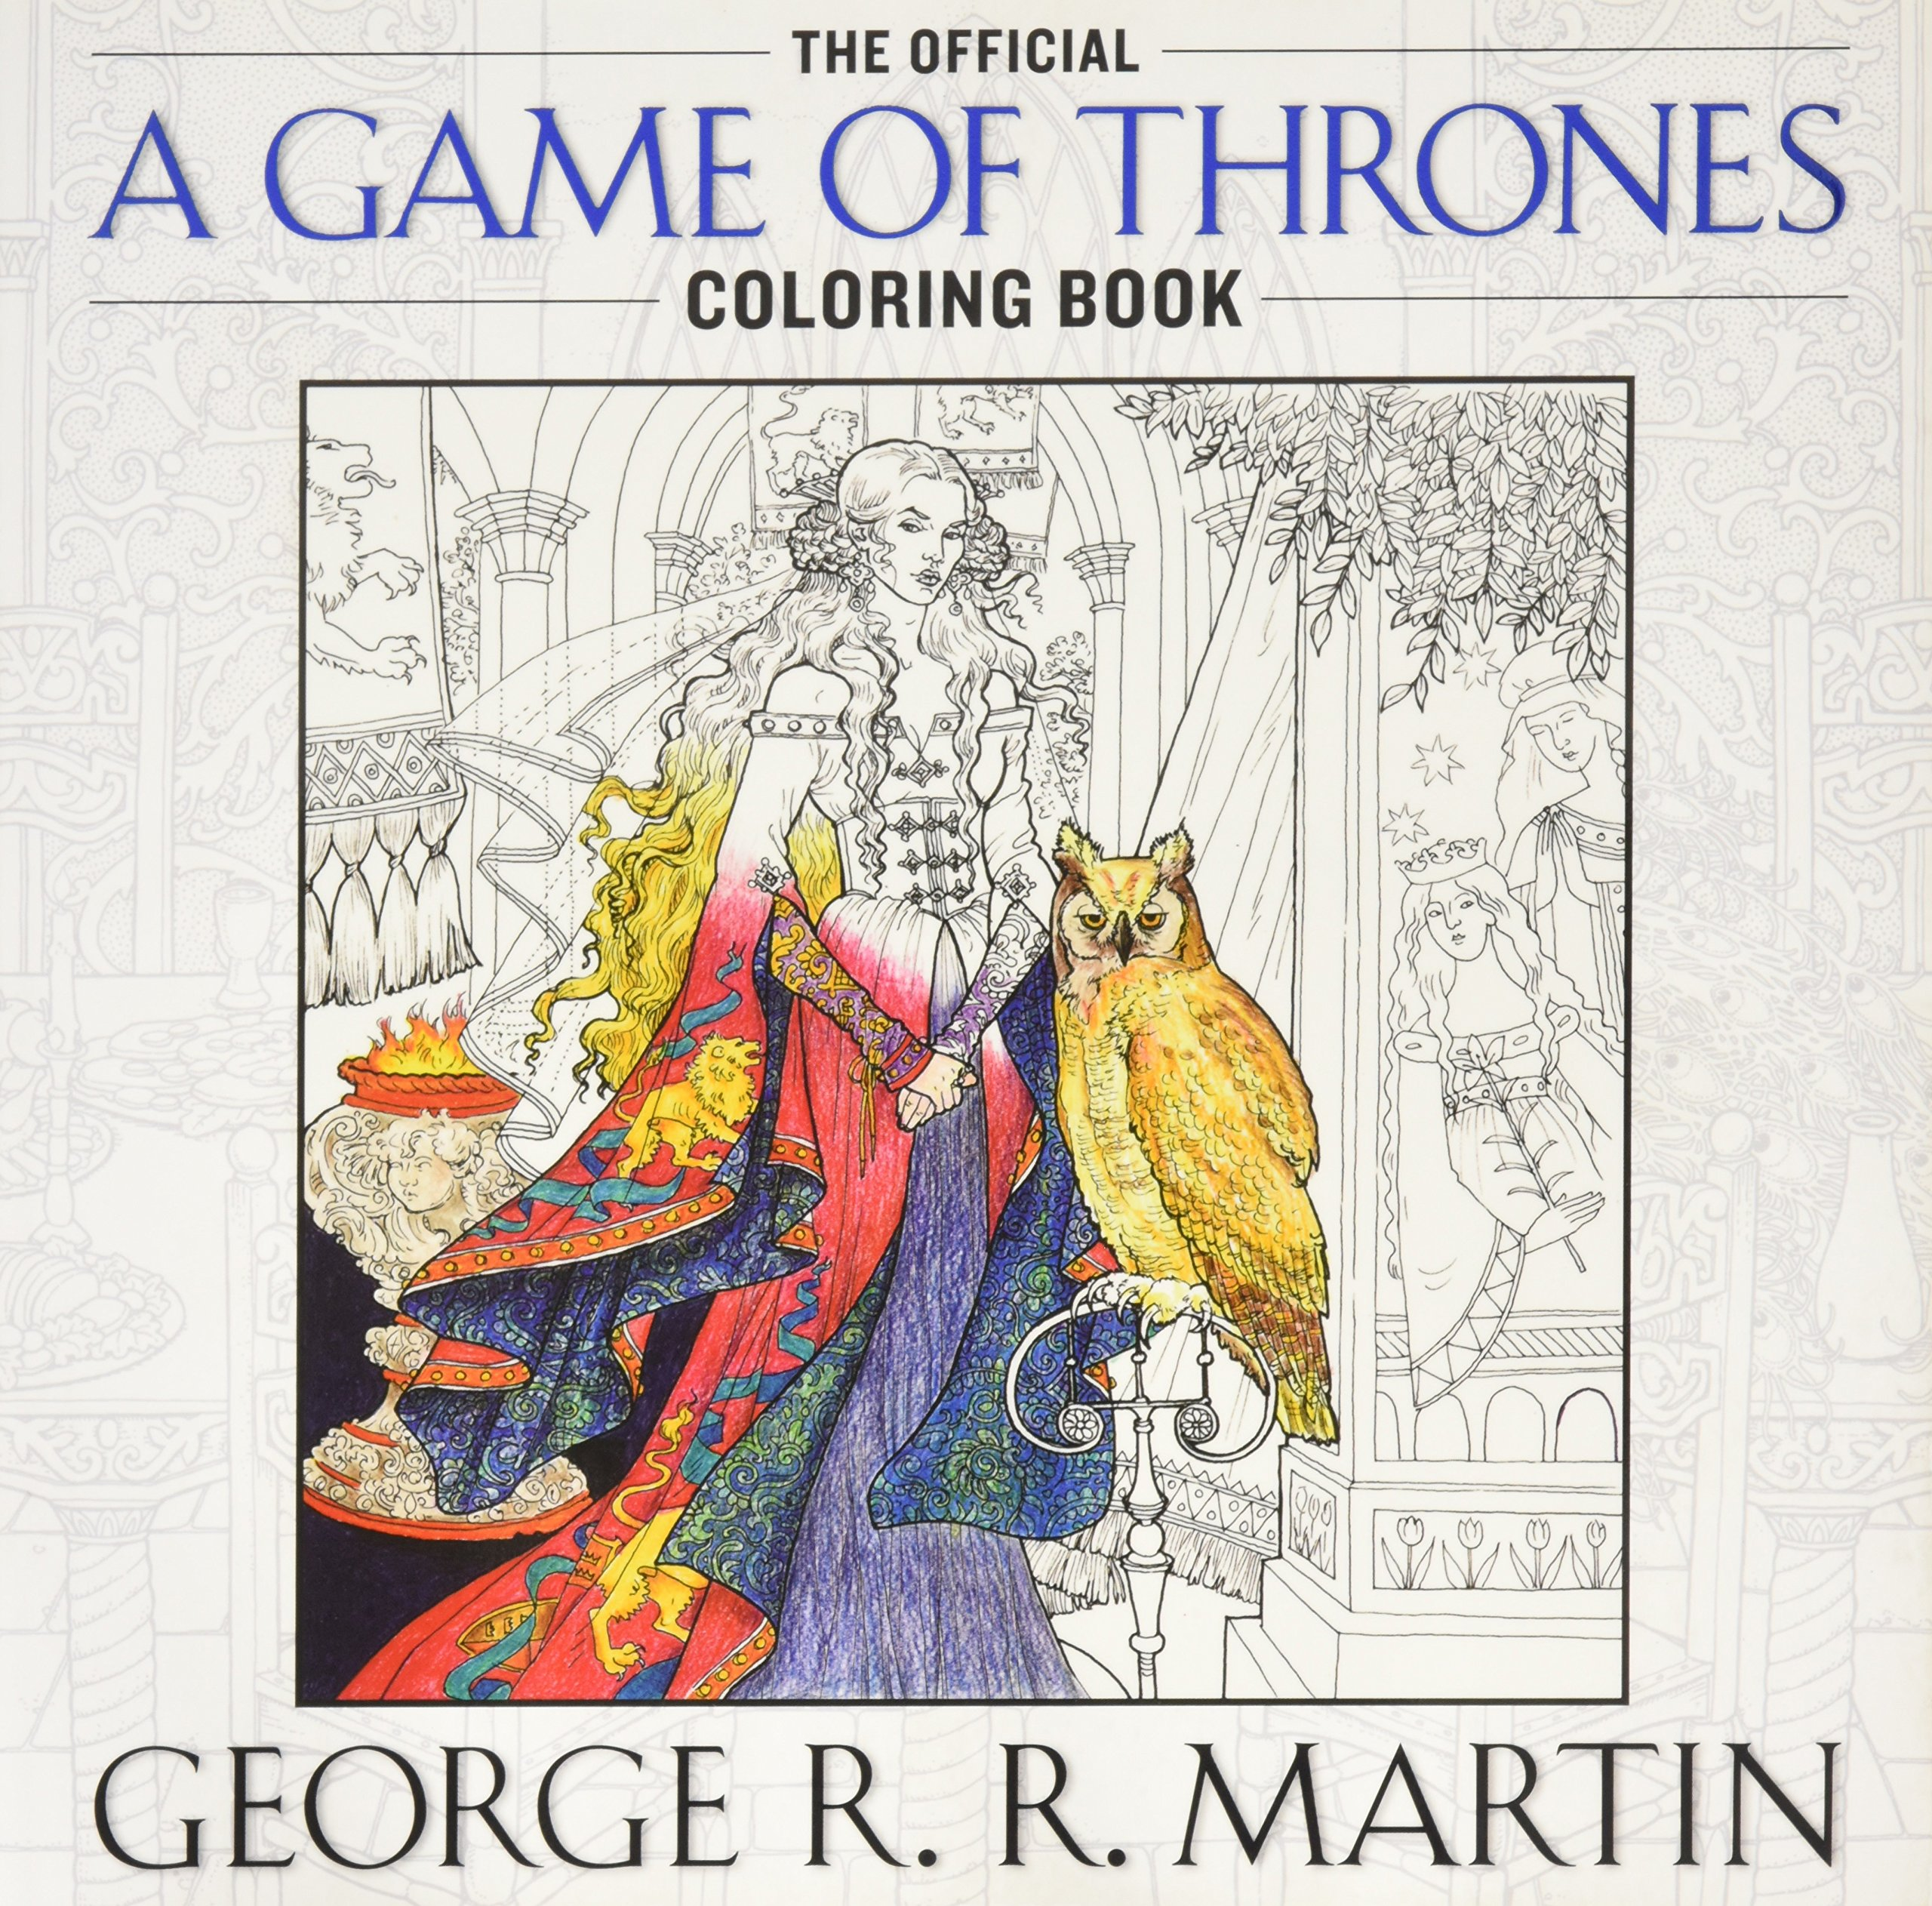 Anti stress colouring book asda - The Official A Game Of Thrones Coloring Book An Adult Coloring Book Song Of Ice And Fire Amazon Co Uk Yvonne Gilbert 9781101965764 Books